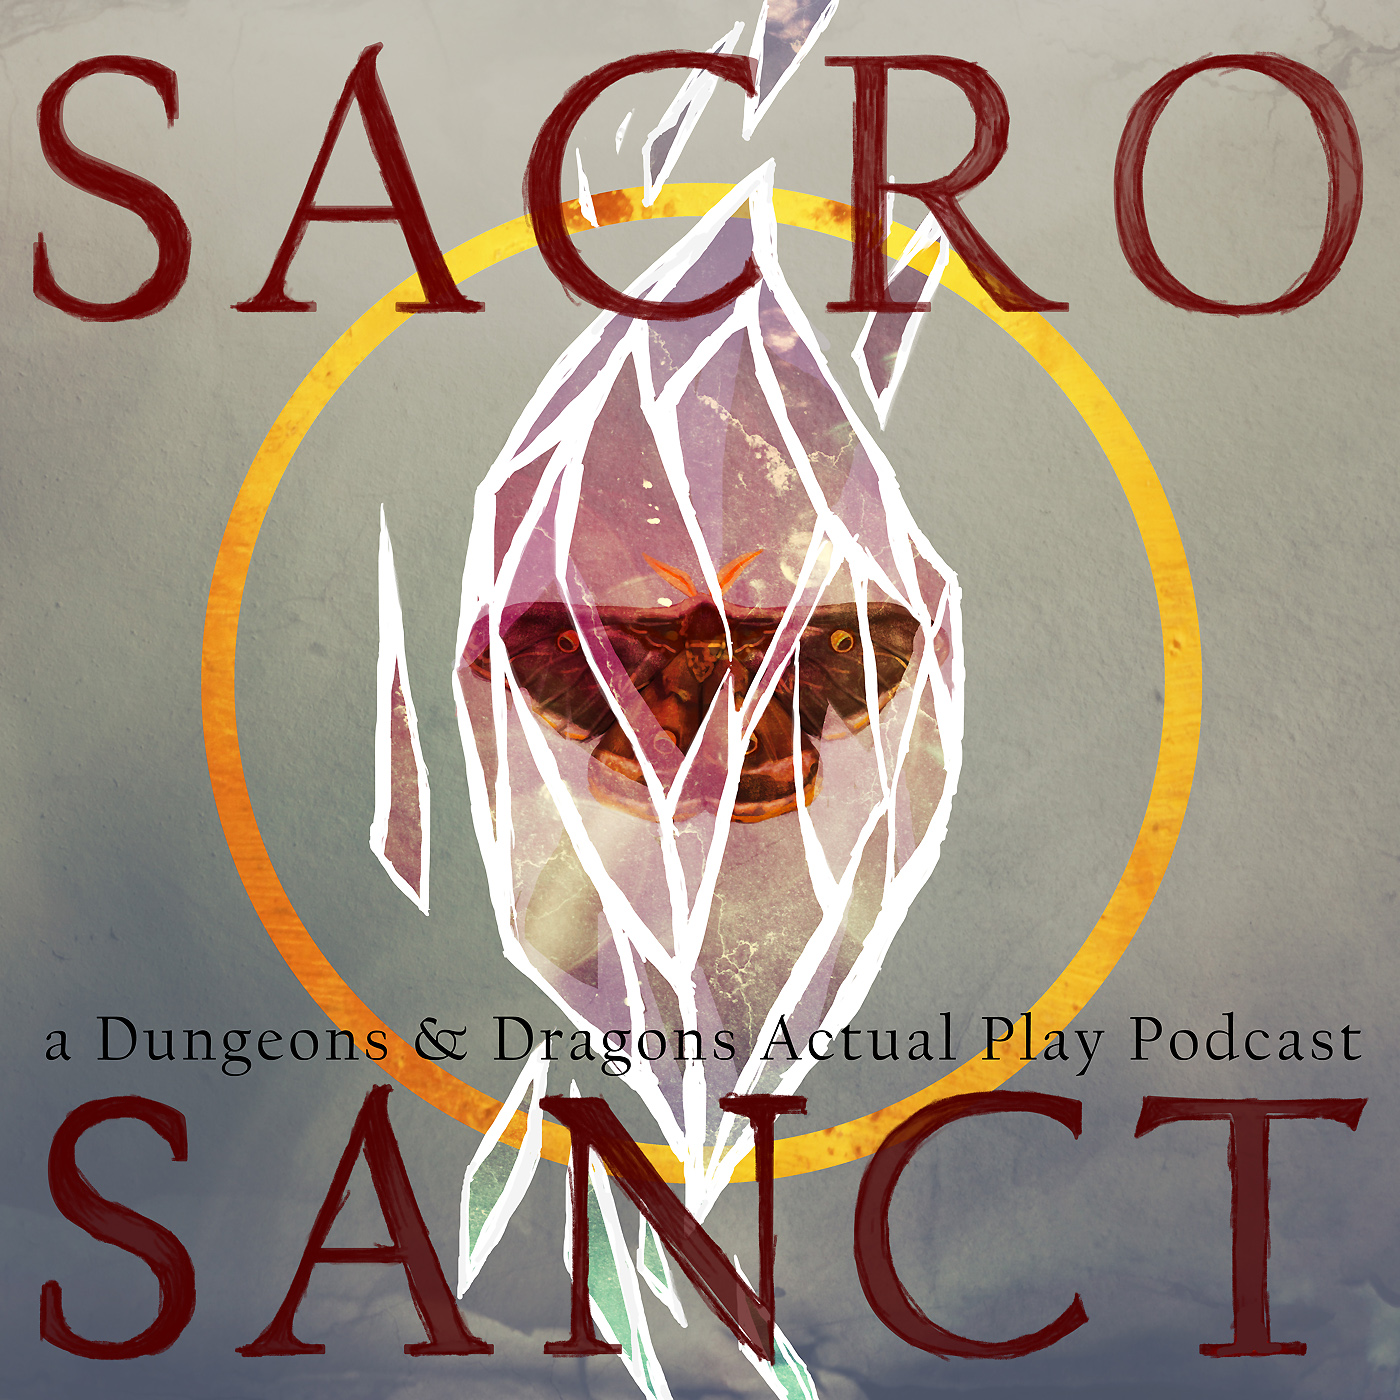 Sacrosanct || A Dungeons & Dragons Actual Play Podcast